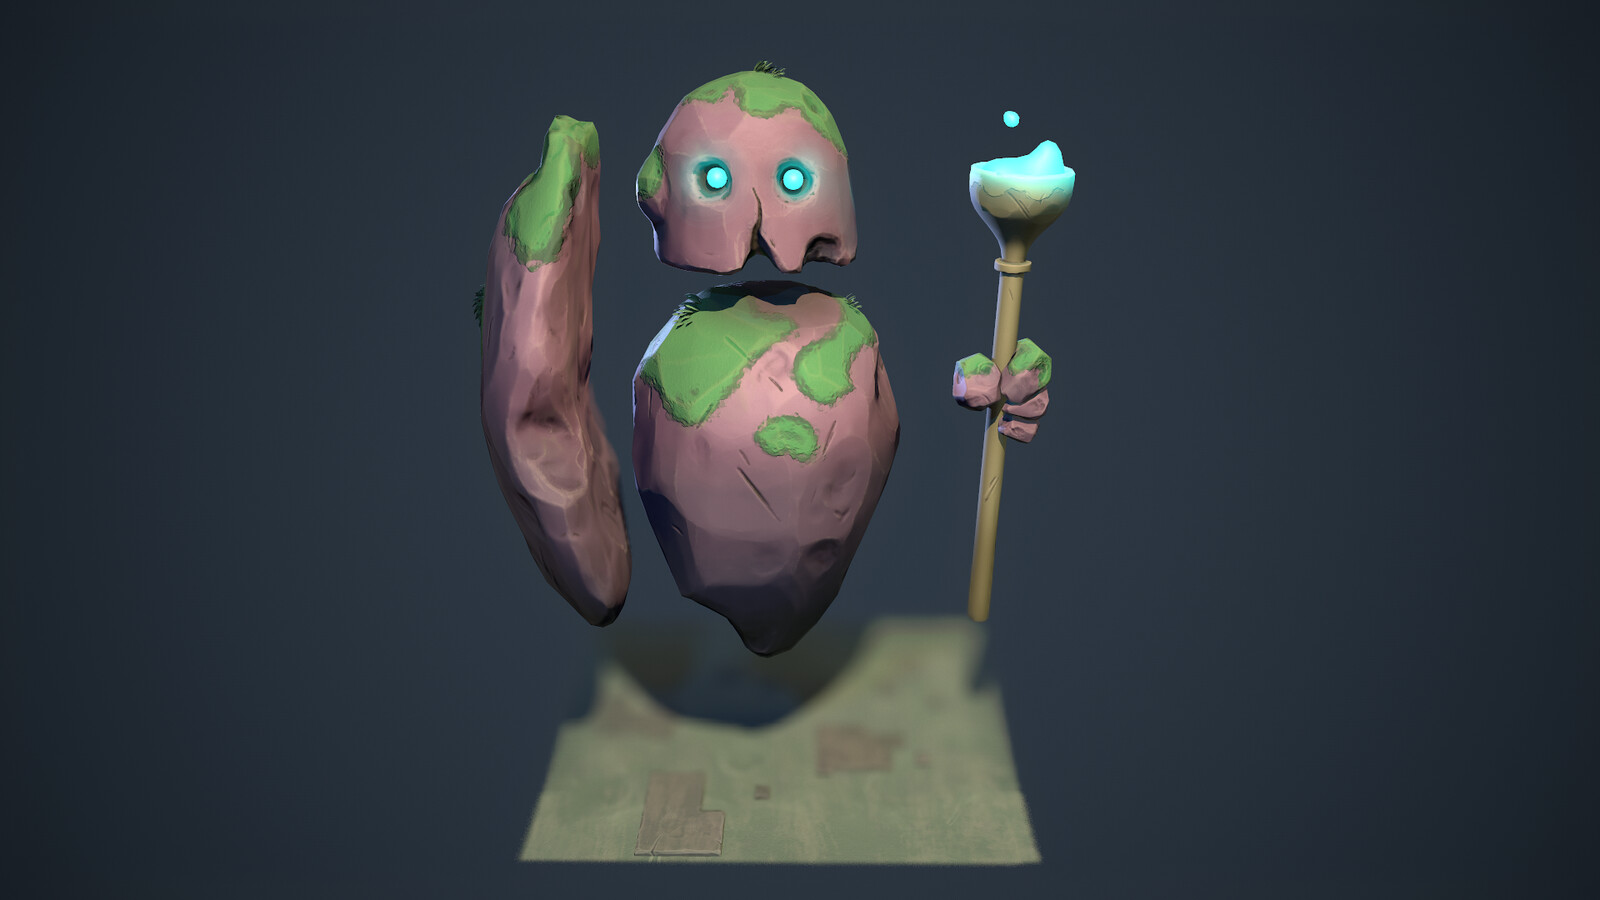 Moonlighter Fanart | Golem 3D Model